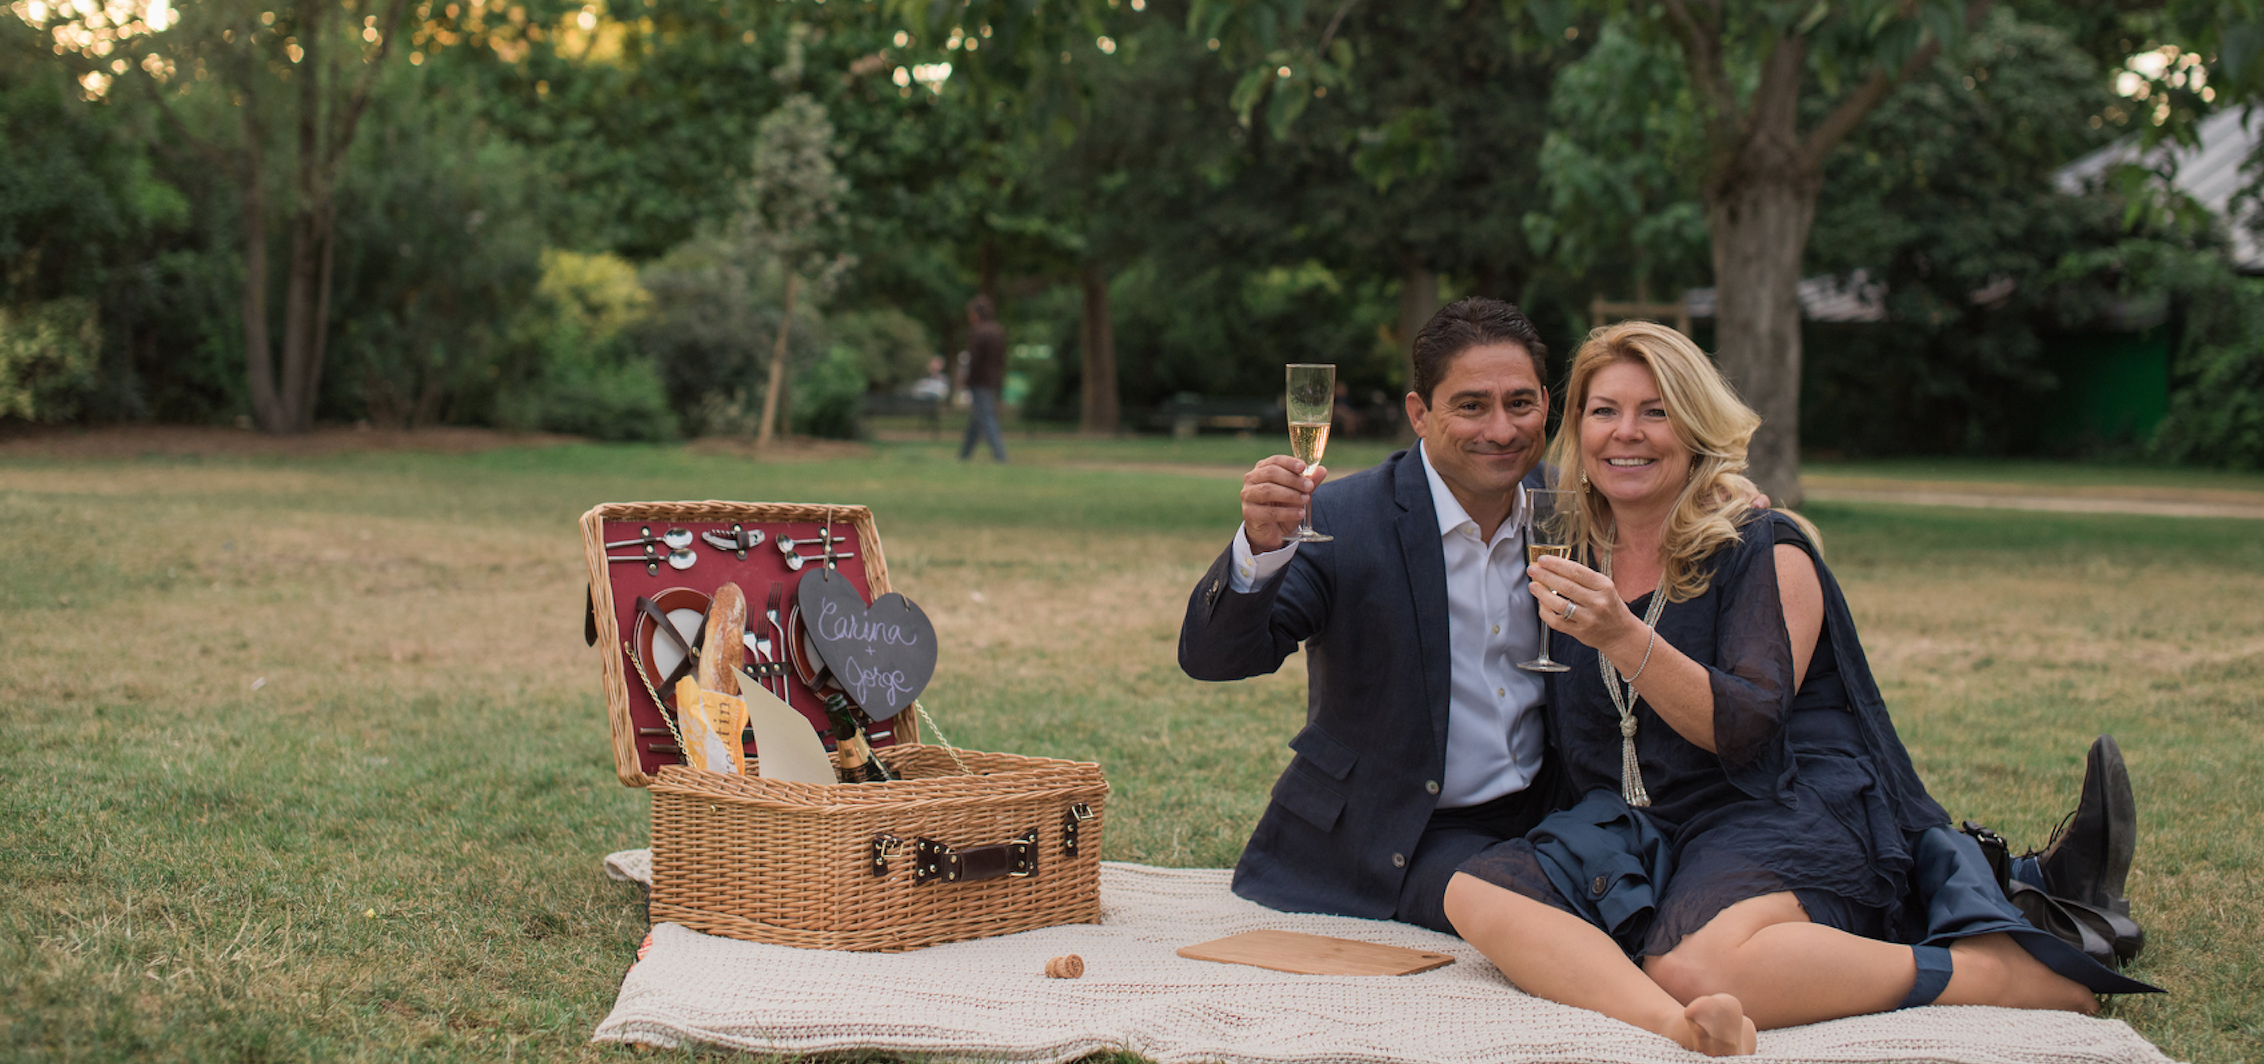 Jorge's Surprise Proposal and Picnic for Carina